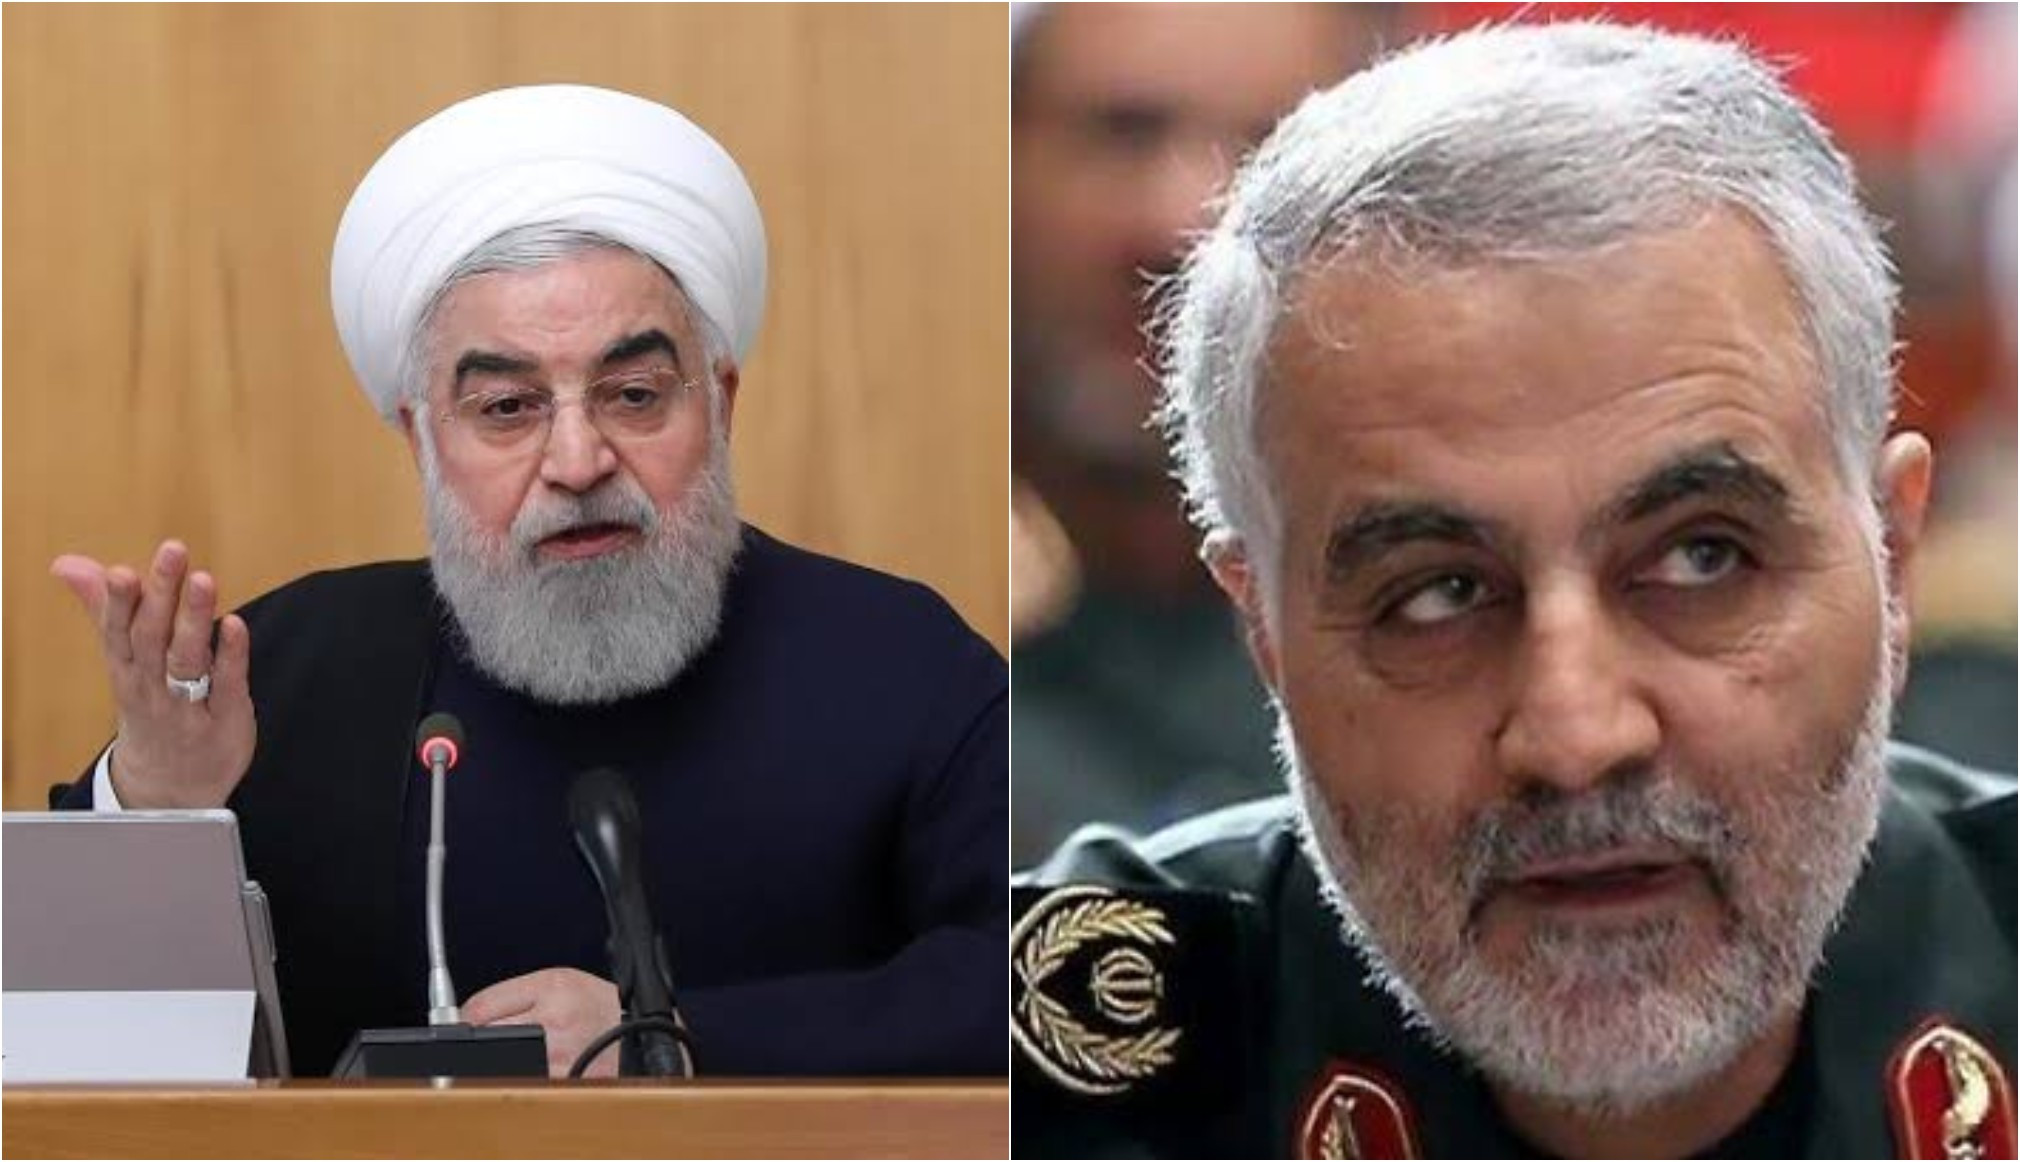 Iran to avenge the death of General killed in US air strike ordered by Donald Trump - President Rouhani